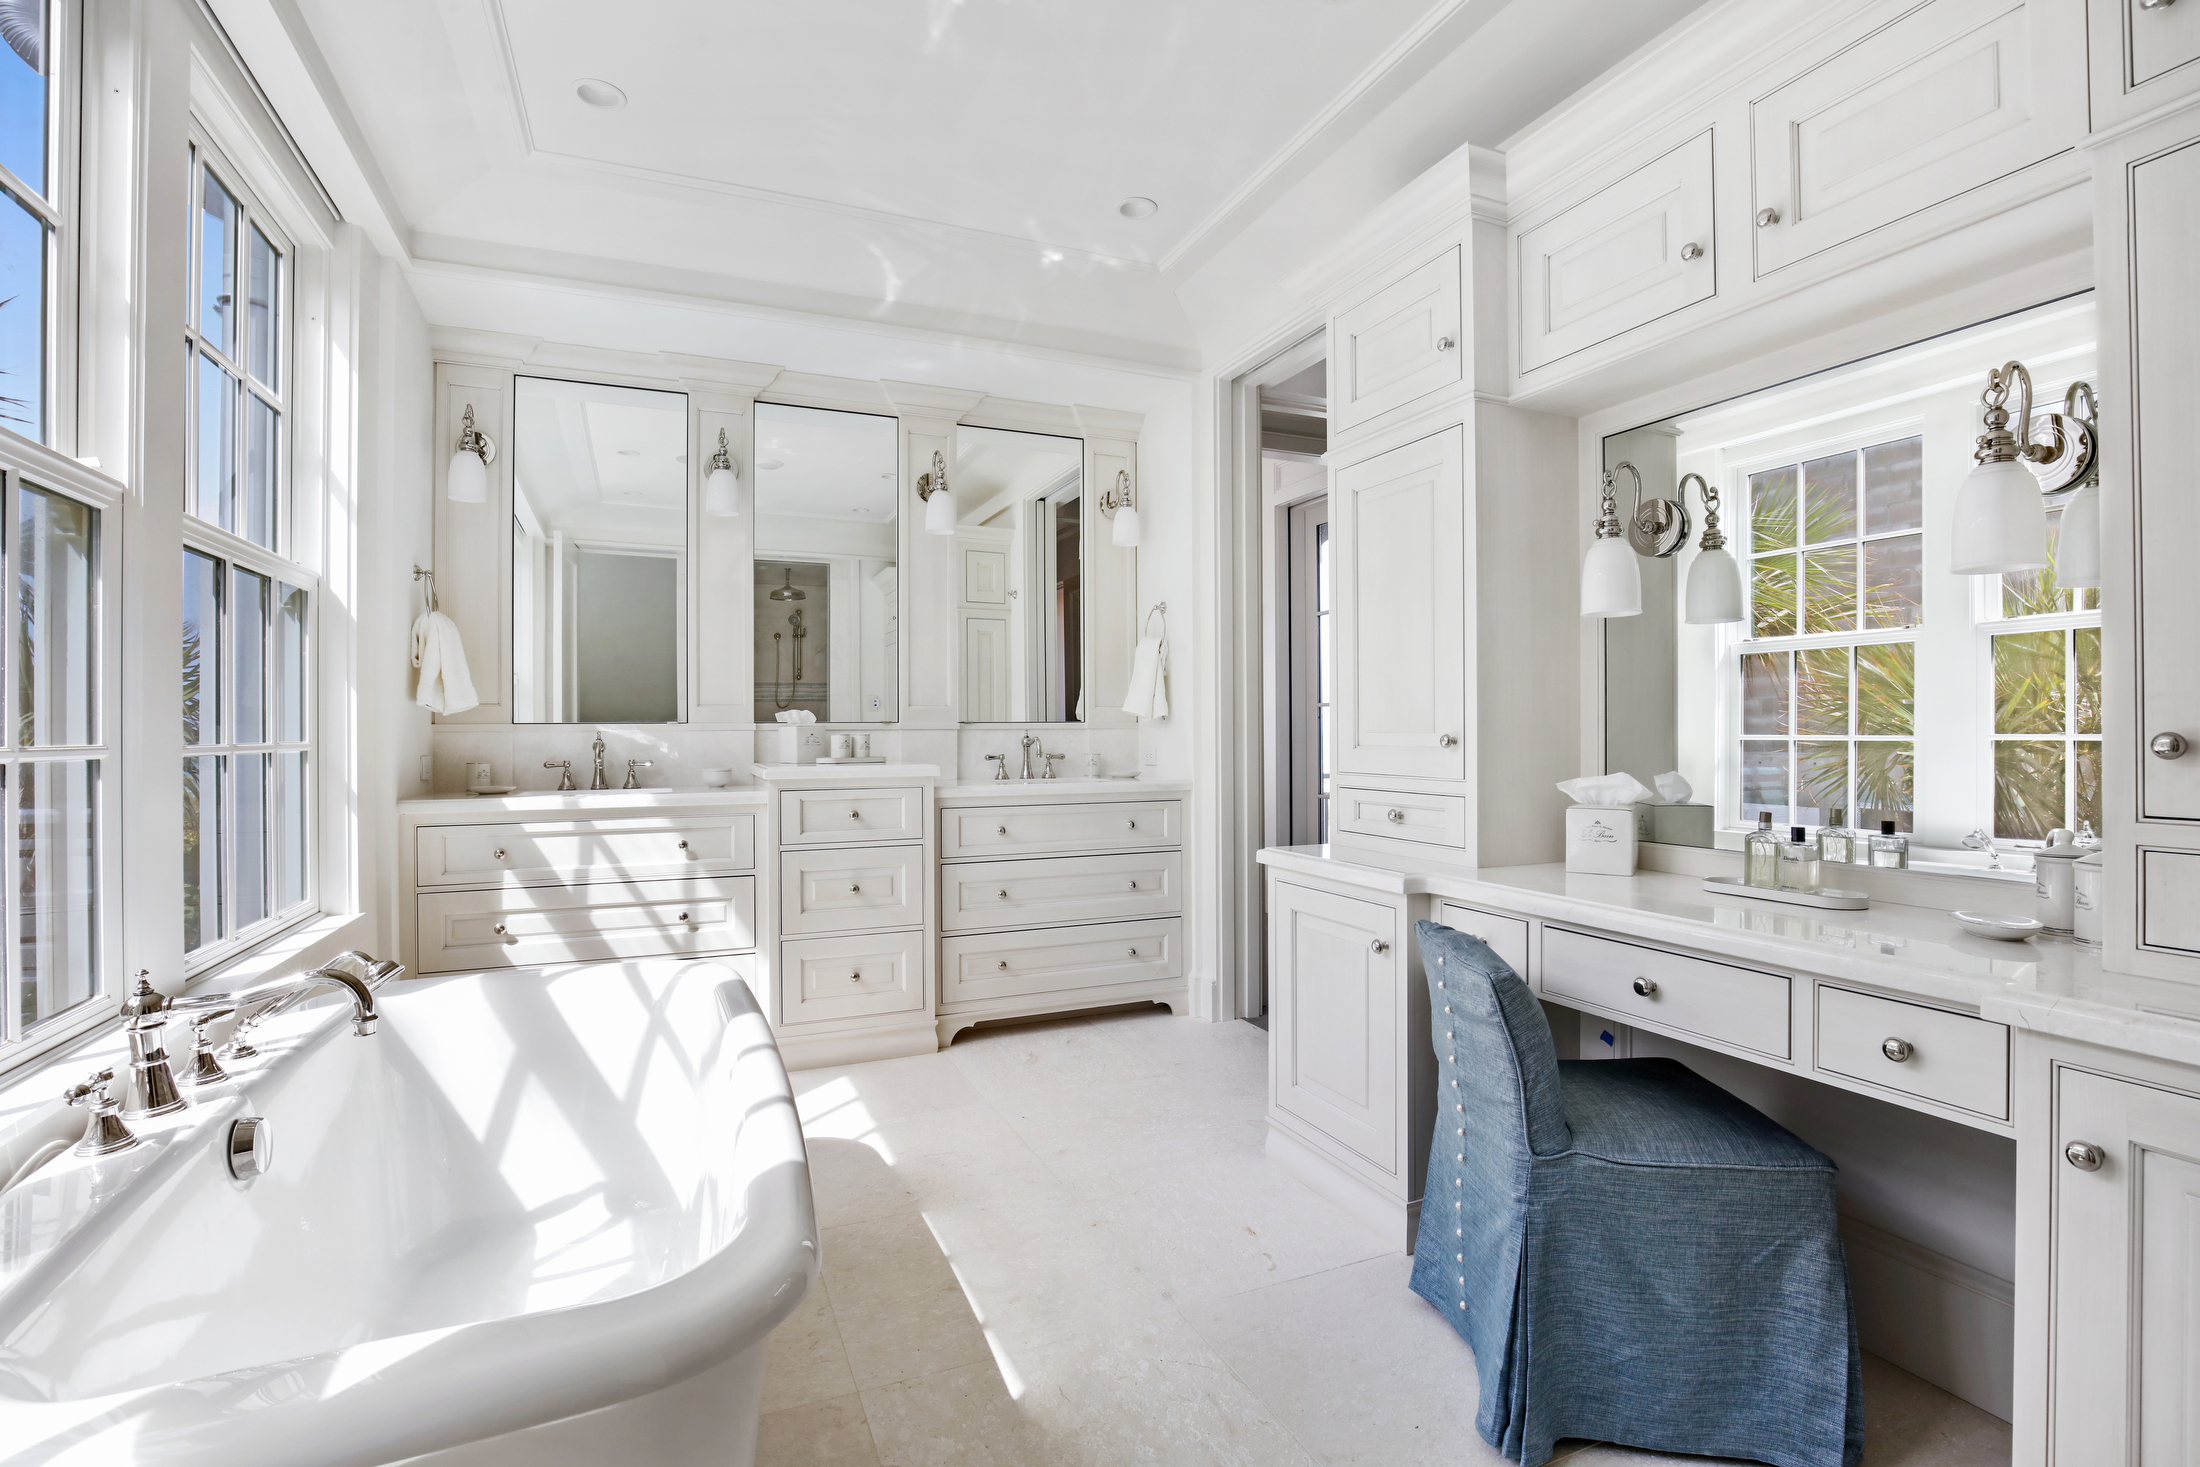 Large master bathroom with soaking tub and vanity space